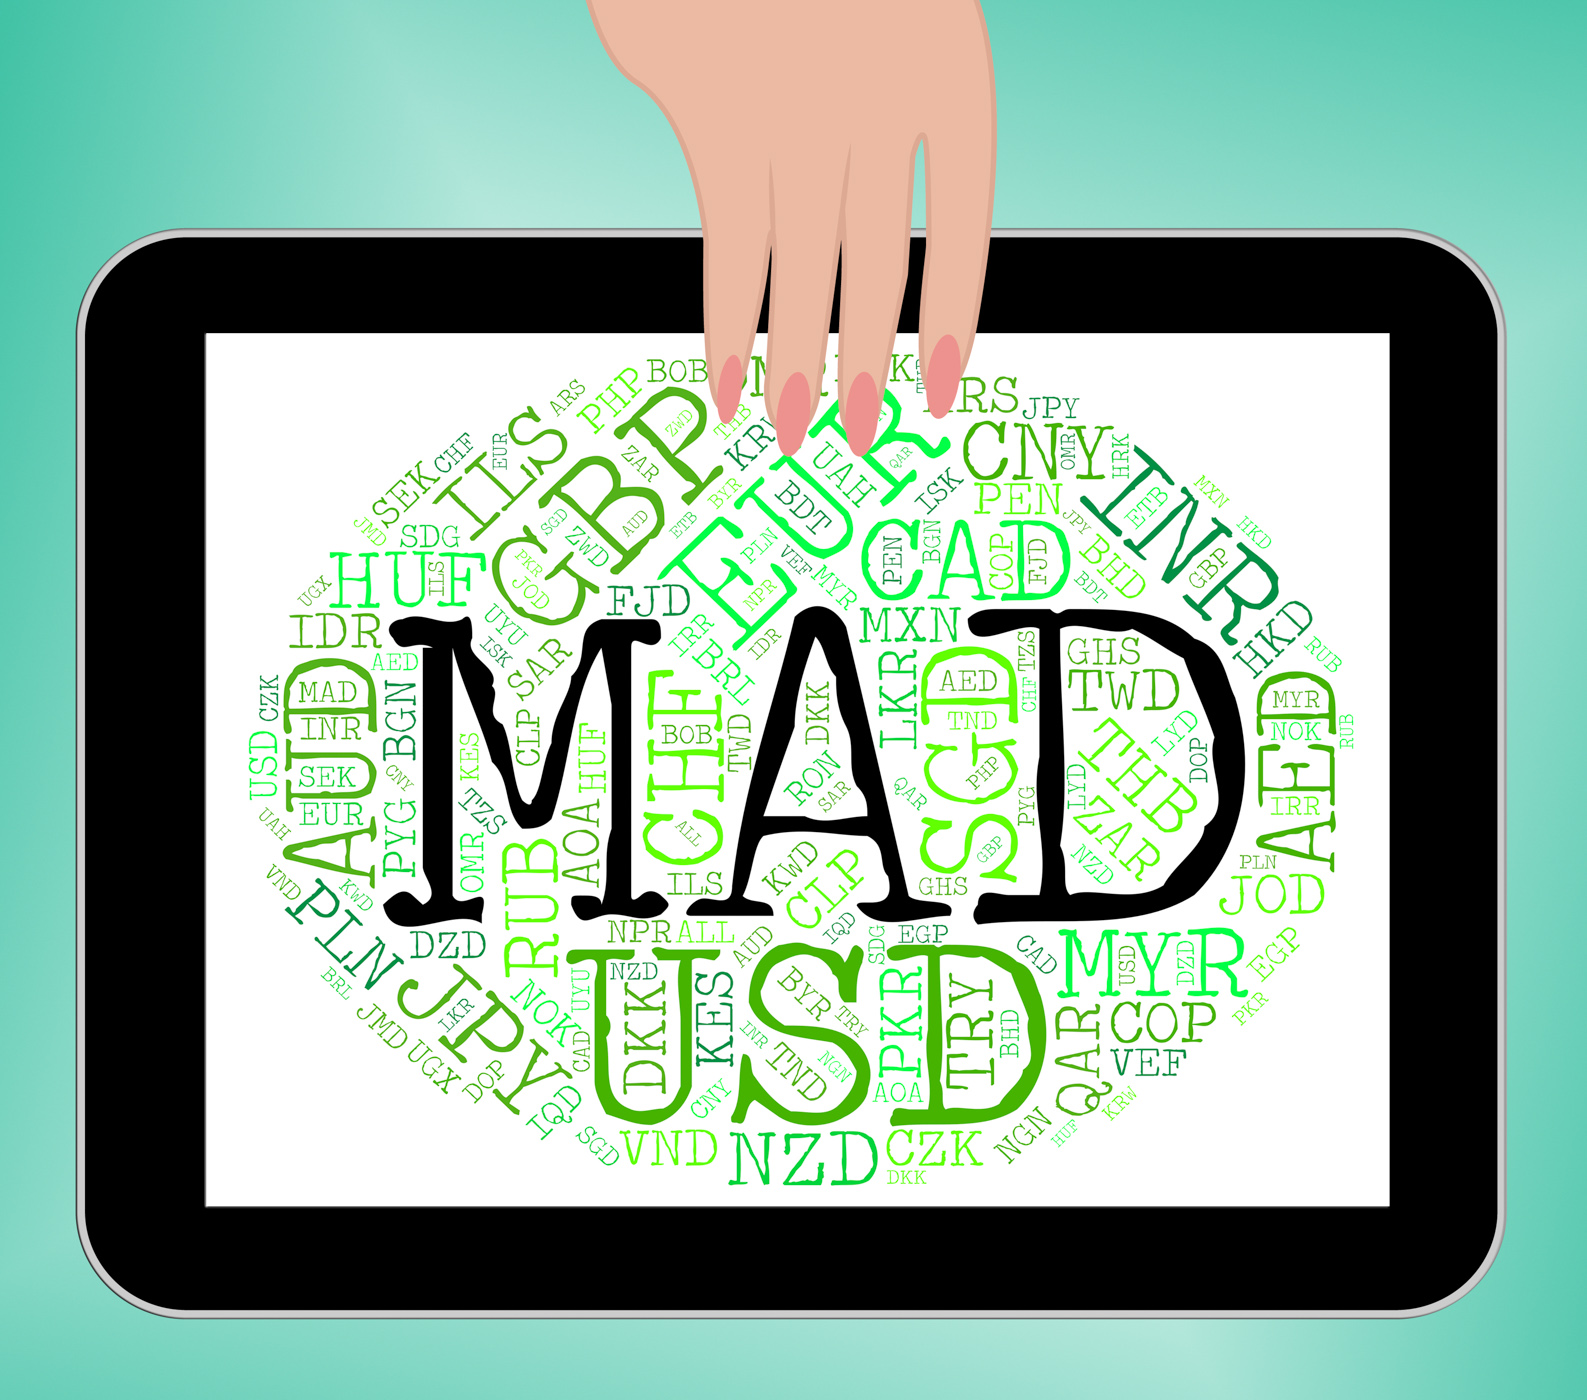 Mad currency means worldwide trading and currencies photo